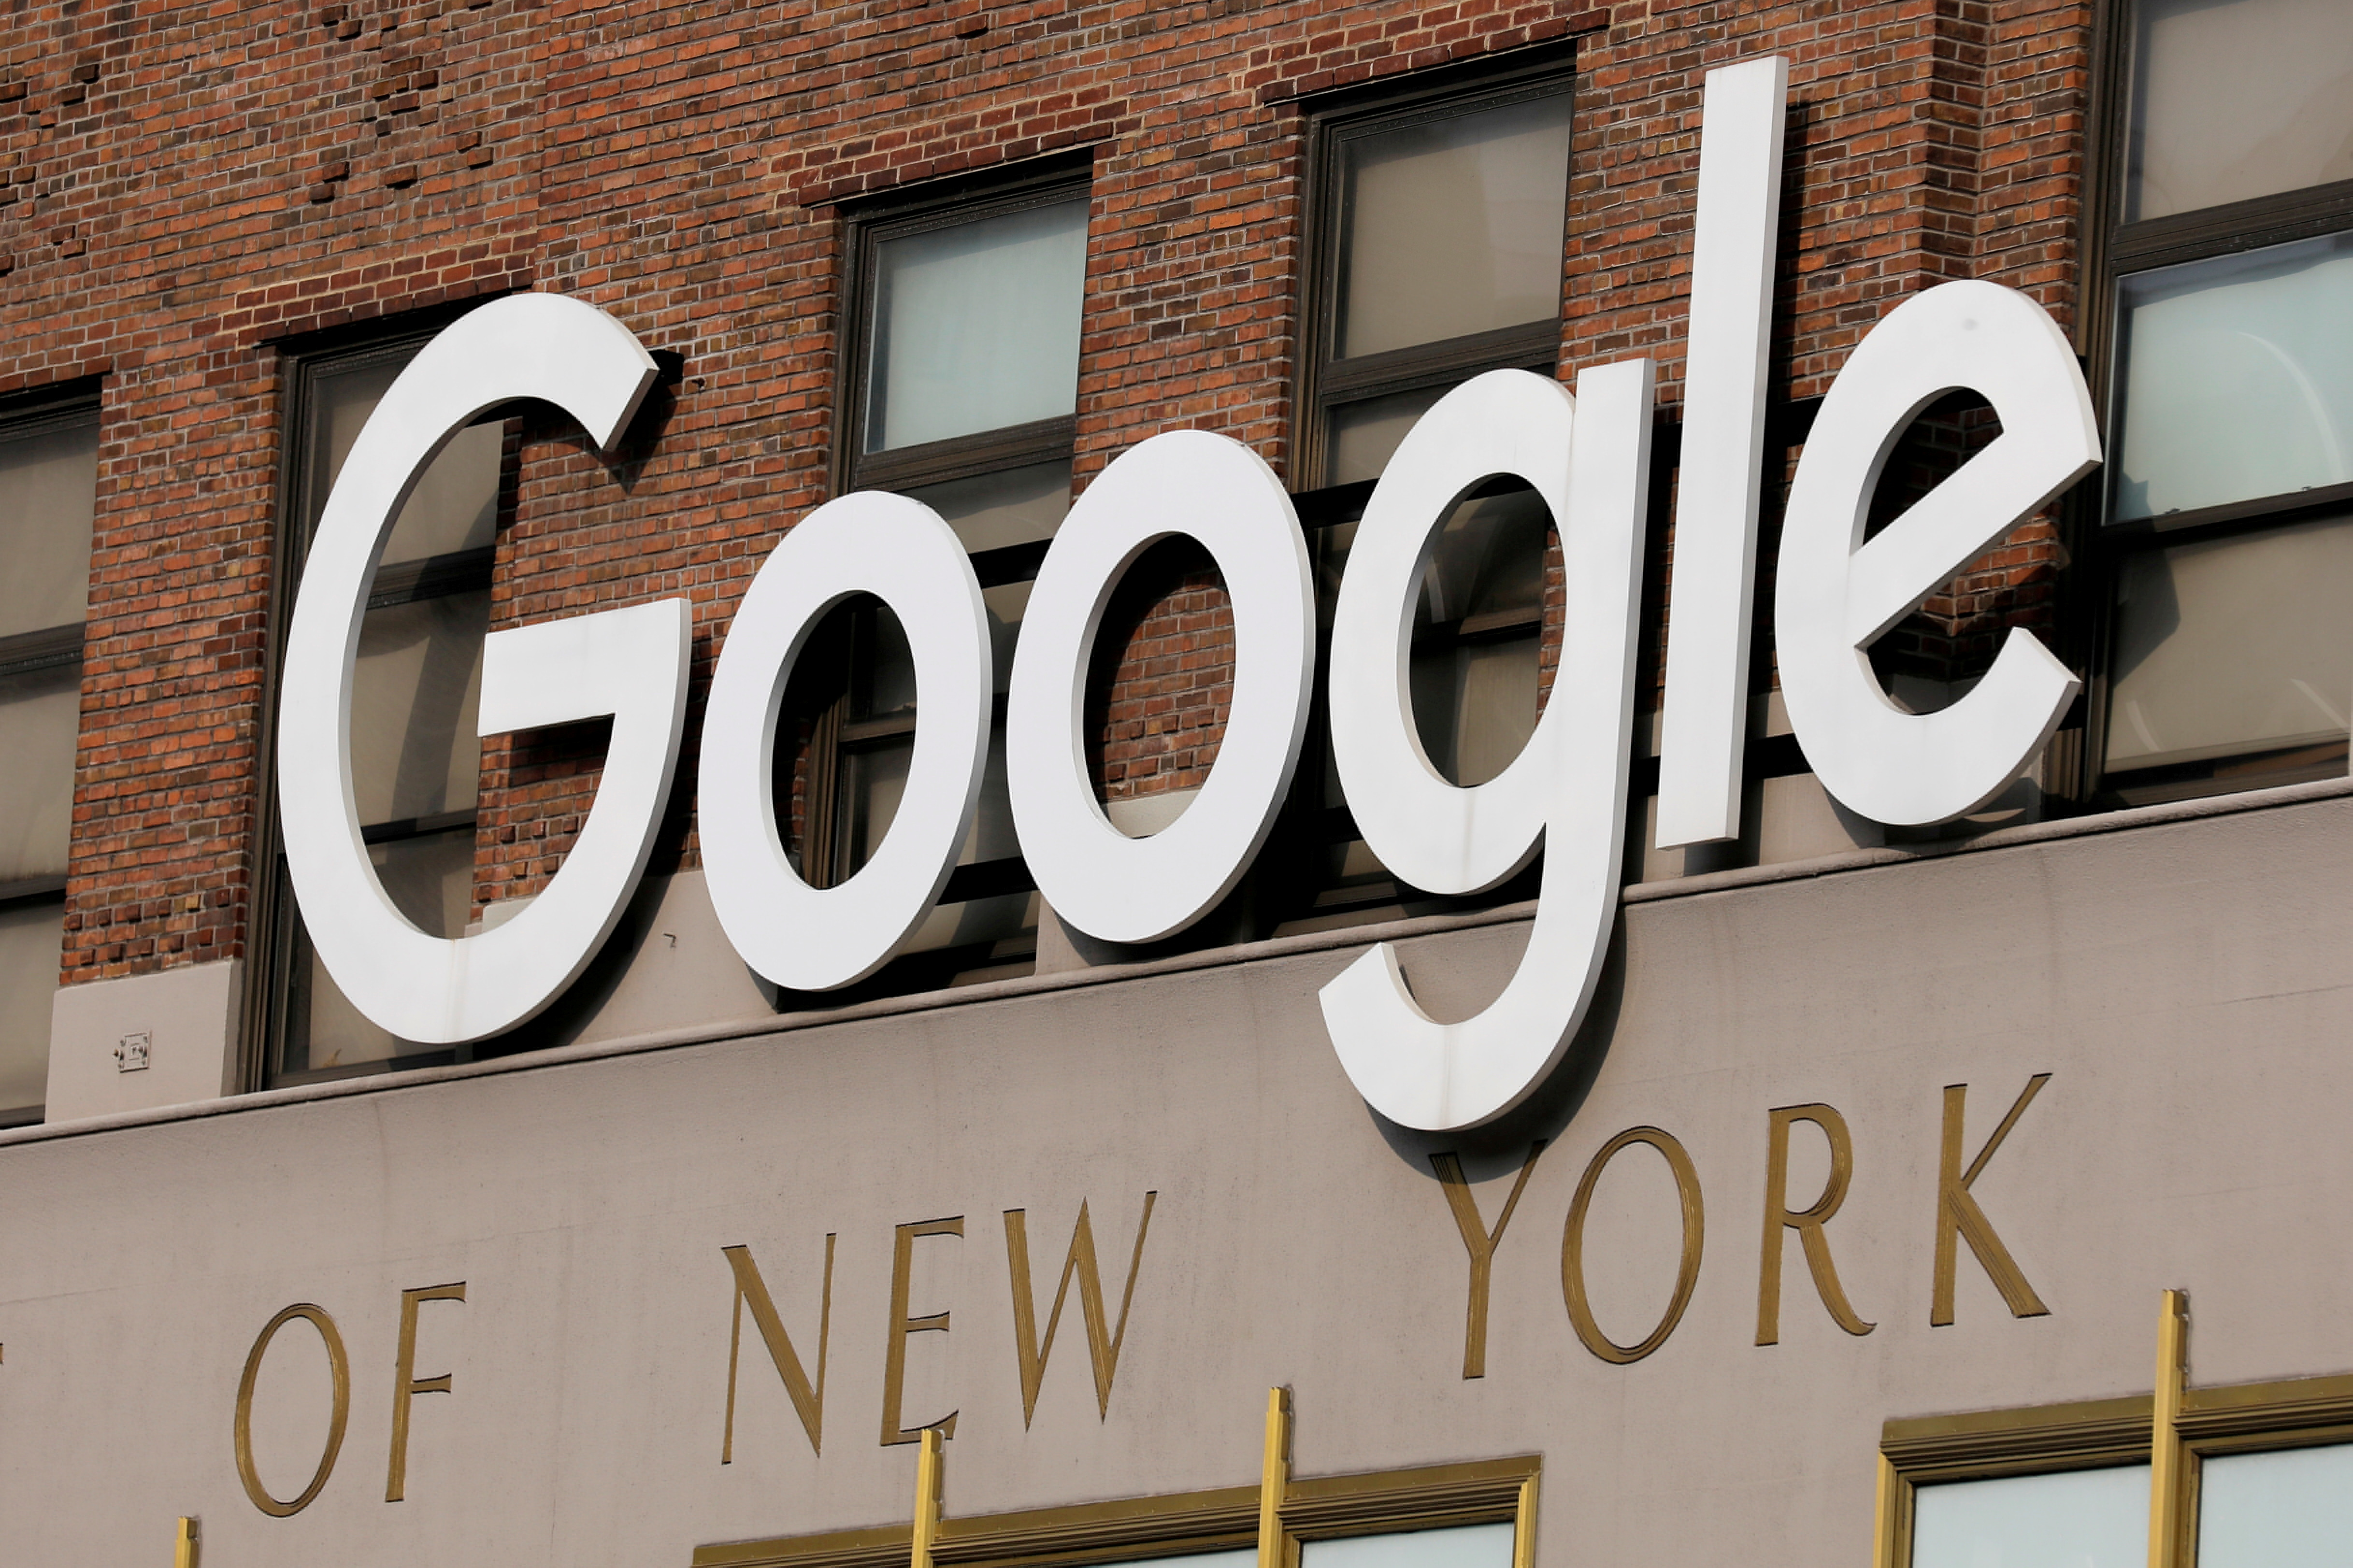 A logo is seen on the New York Google offices. New York City, U.S., July 29, 2021. REUTERS/Andrew Kell/File Photo